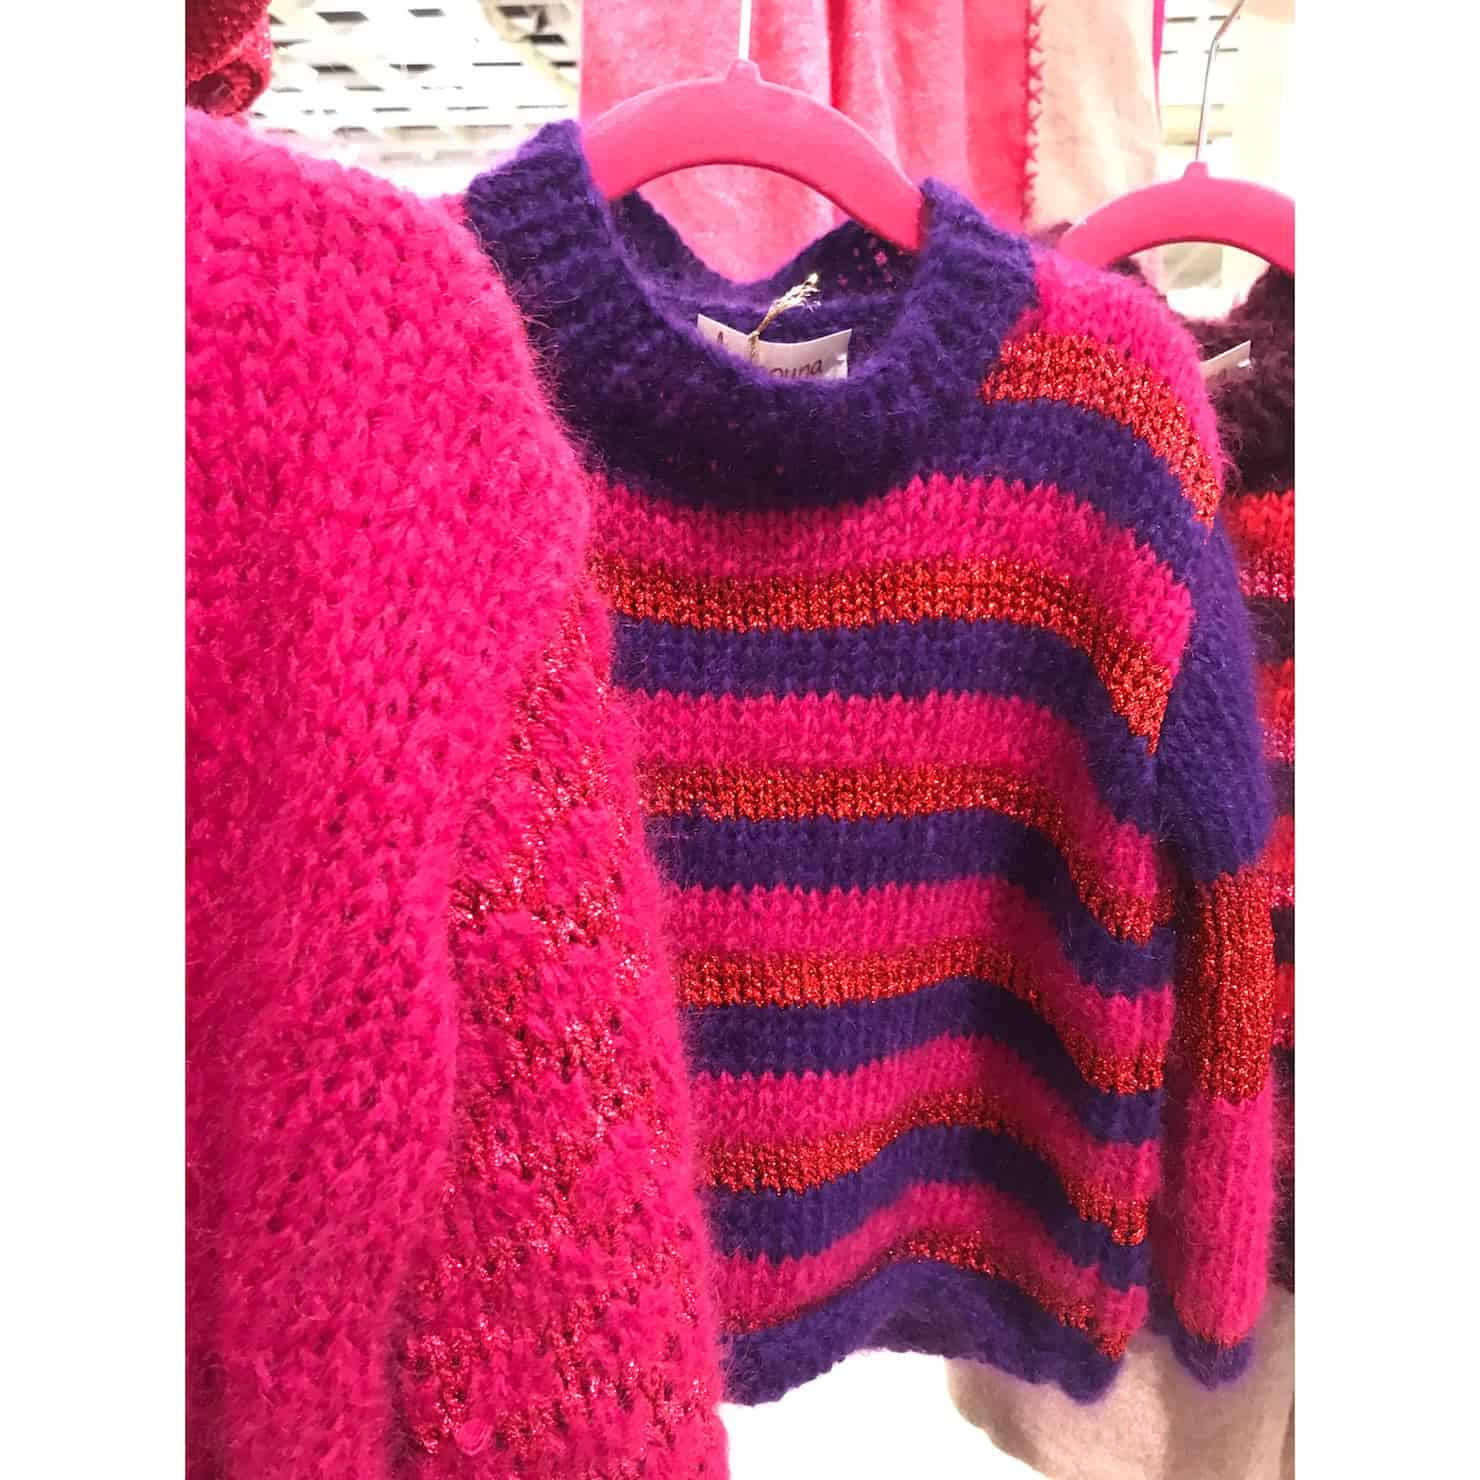 pitti Bimbo 88 kid's evolution knitwear